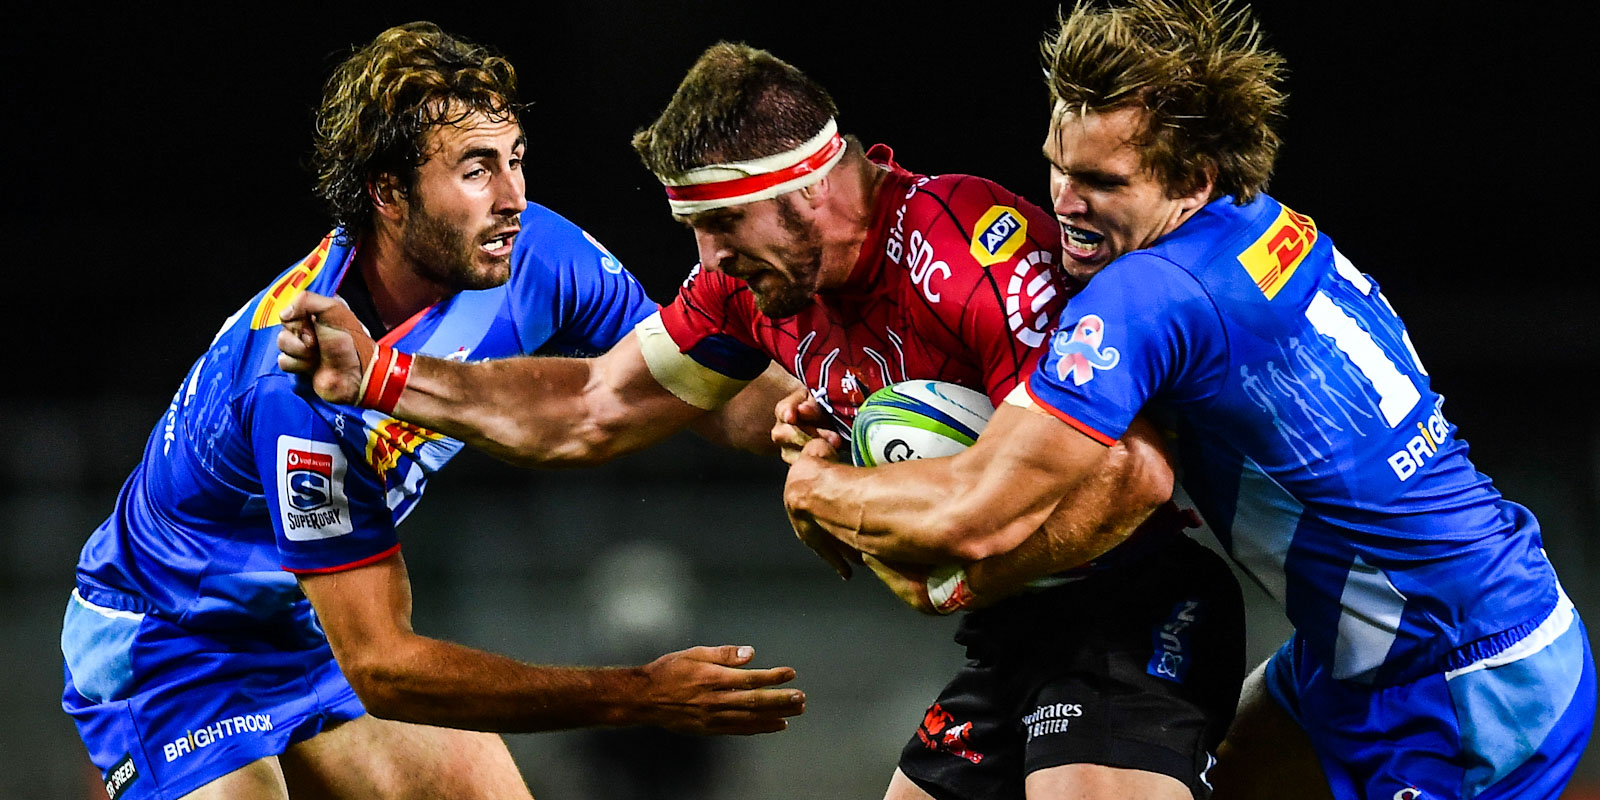 DHL Stormers midfielders Rikus Pretorius (left) and Dan du Plessis attempt to tackle Jaco Kriel of the Emirates Lions.